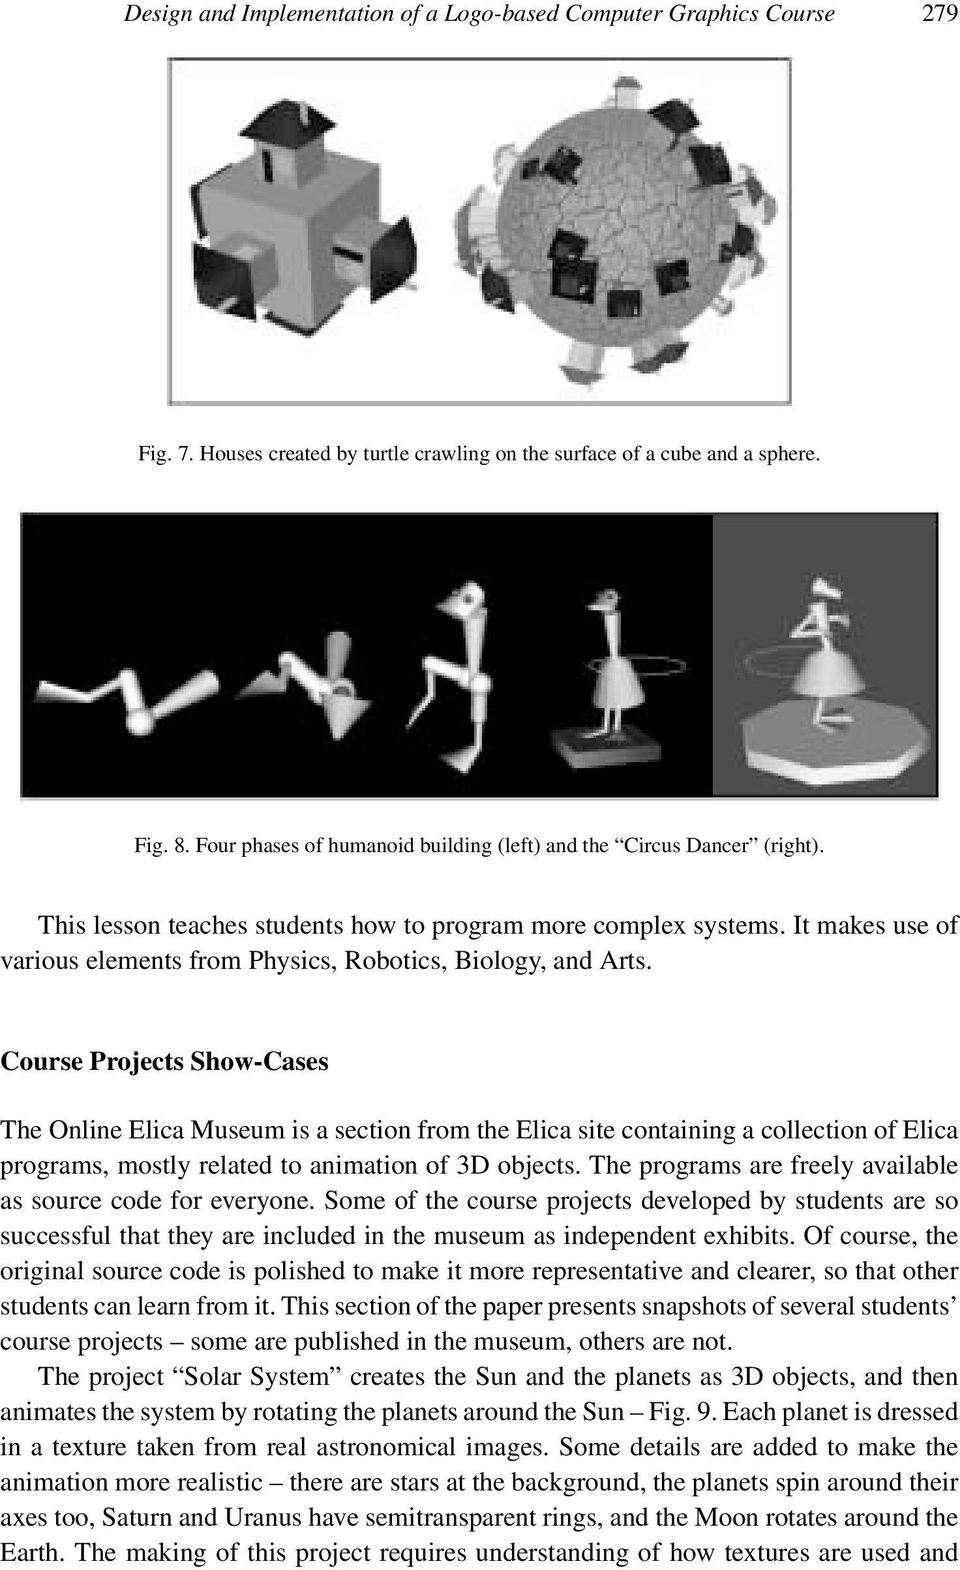 Design and Implementation of a Logo-based Computer Graphics Course - PDF